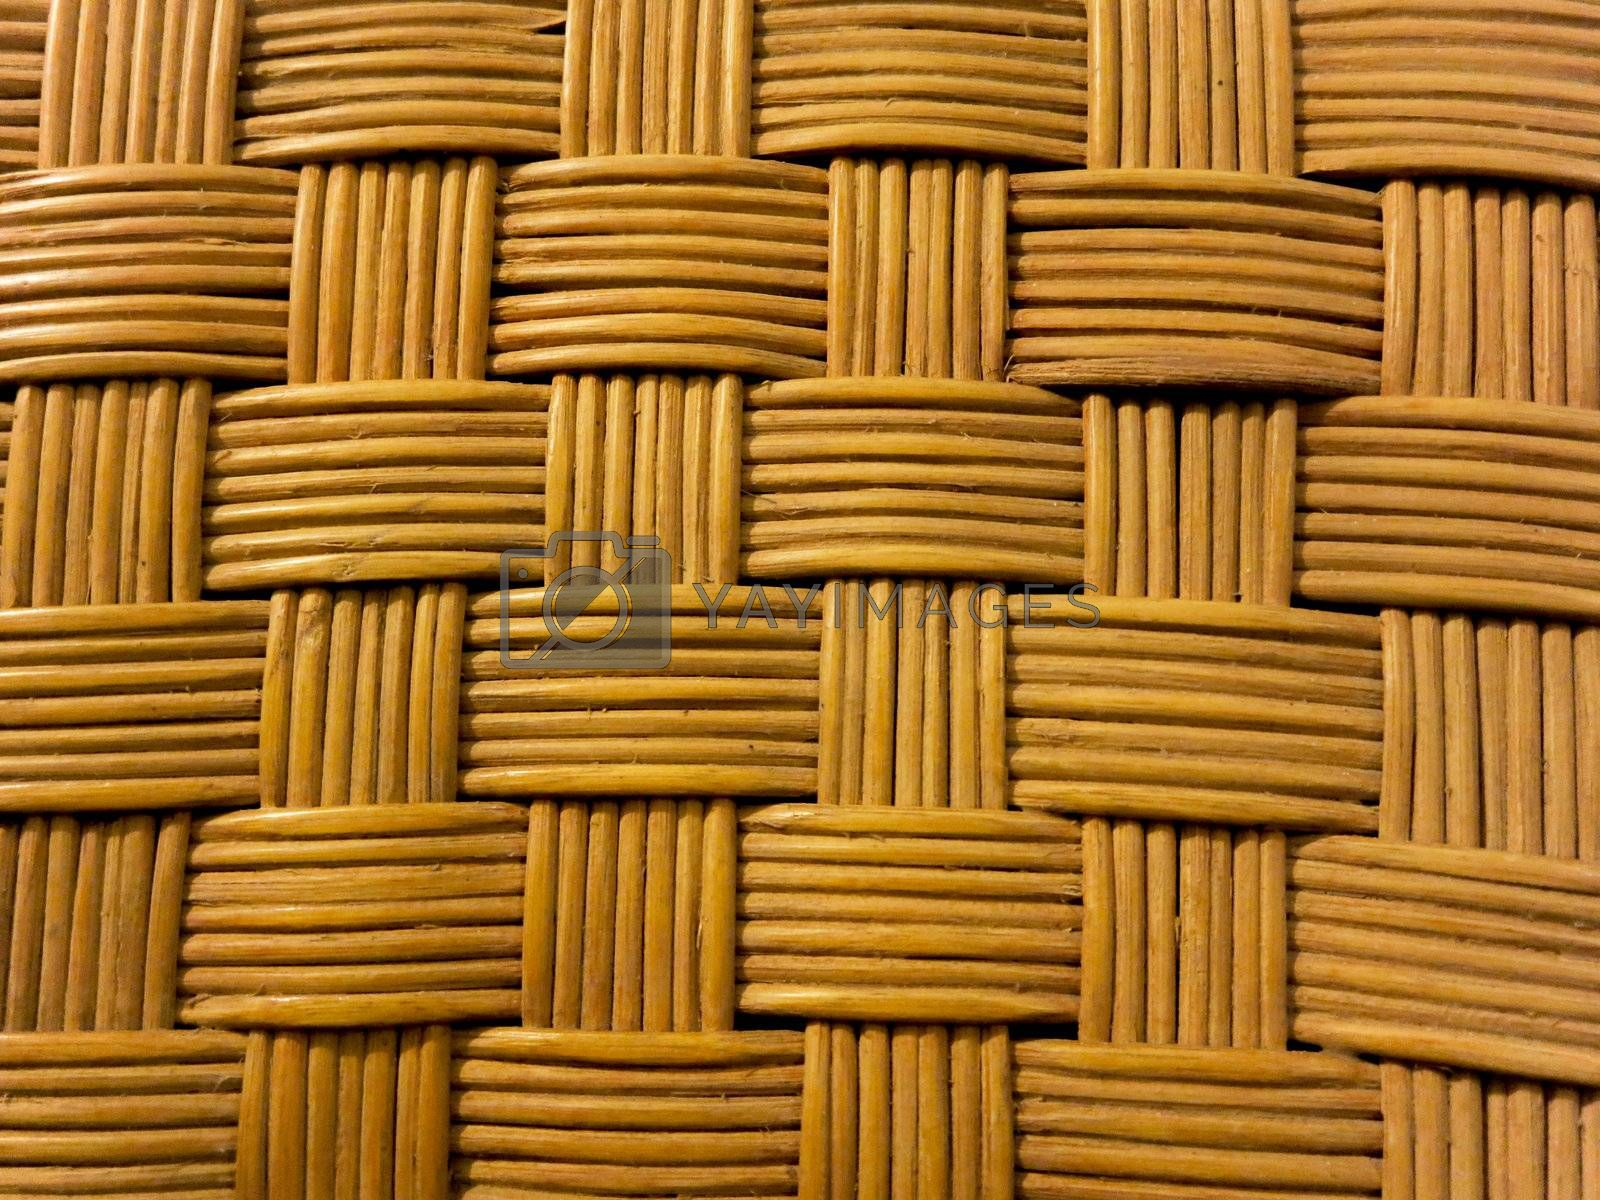 Closeup shot of a textured woven bamboo with natural pattern.